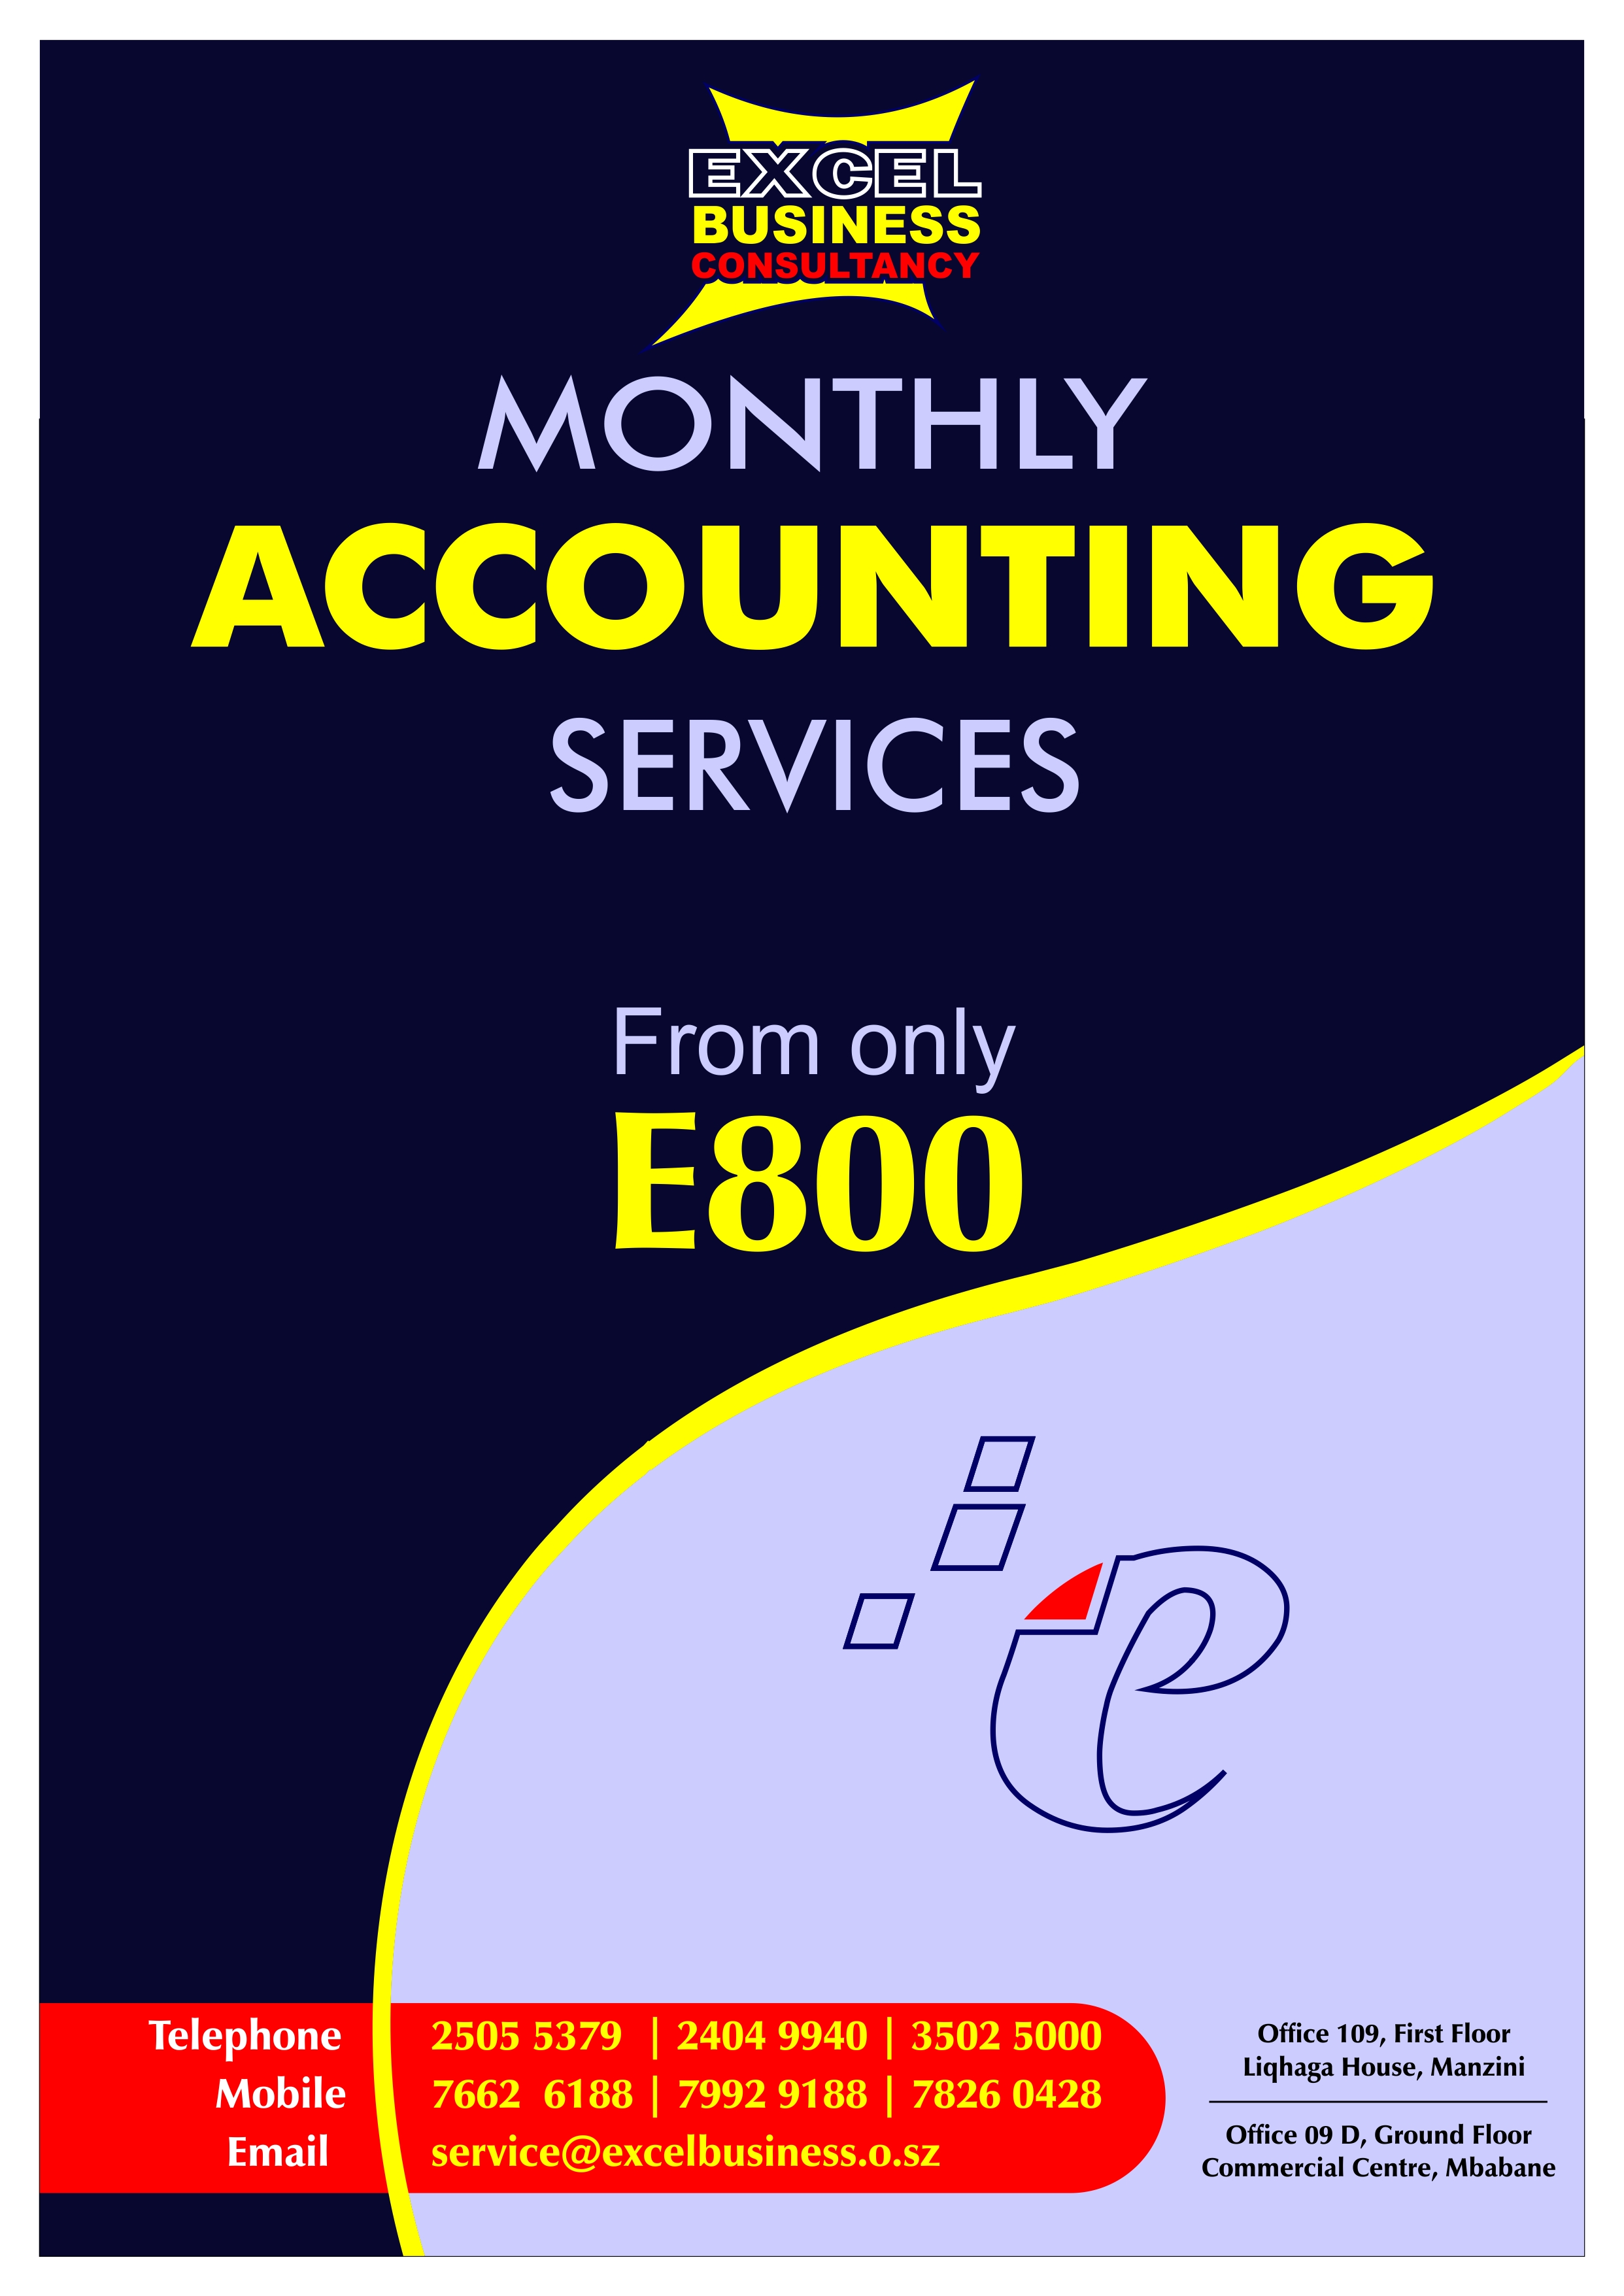 Excel Monthly Accounting Services Ad 1